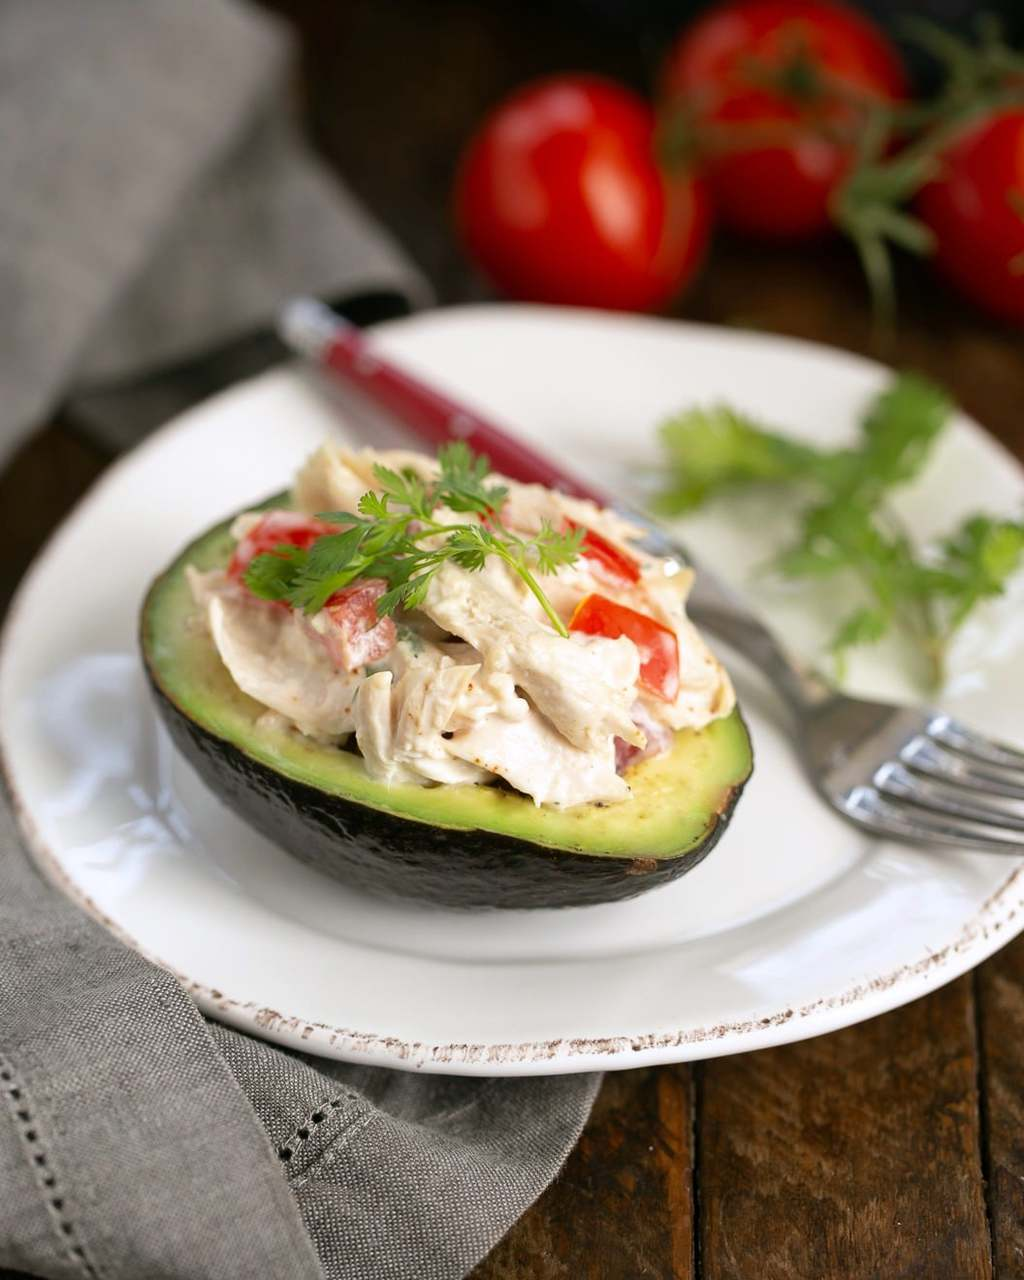 Southwestern Chicken Stuffed Avocados - Delicious, low-carb convenience food #keto #lowcarb #avocados #chicken #southwestern